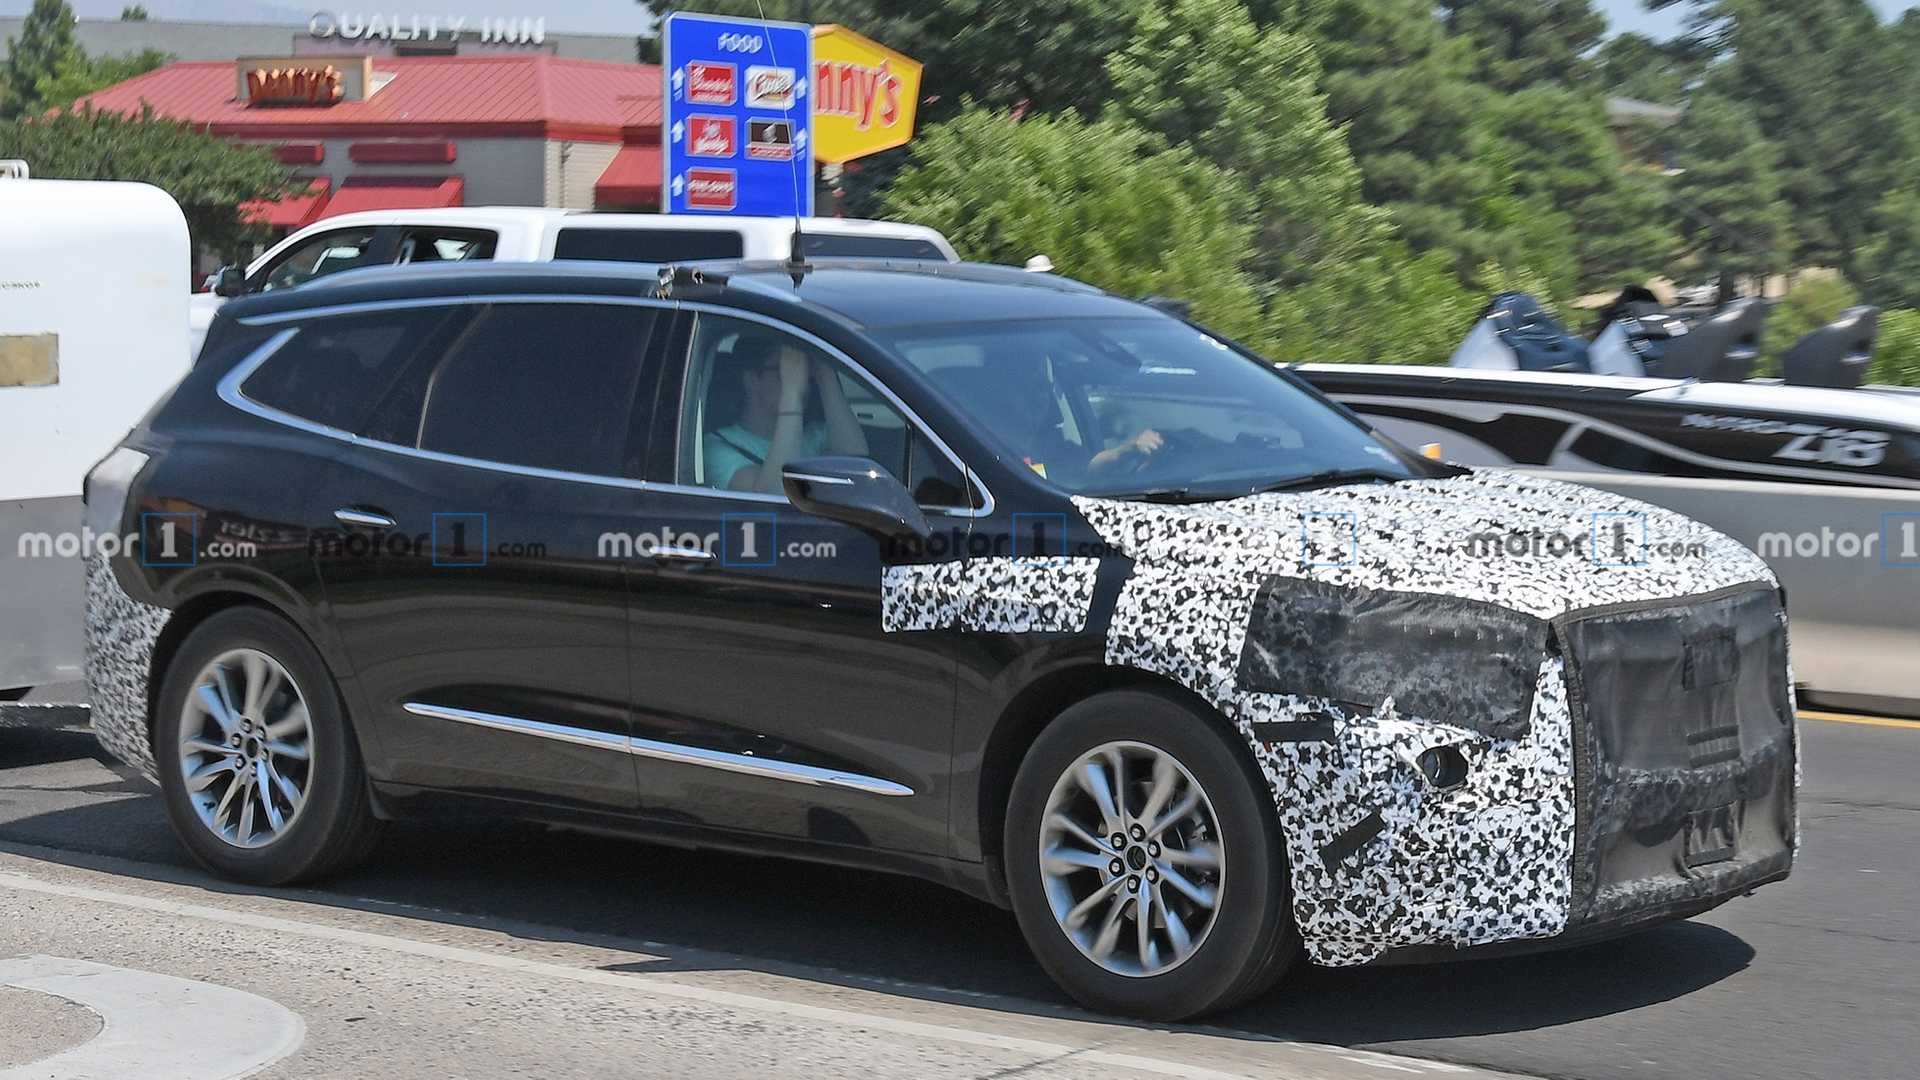 2021 Buick Enclave Spied For The First Time 2022 Buick Enclave Configurations, Deals, Dashboard